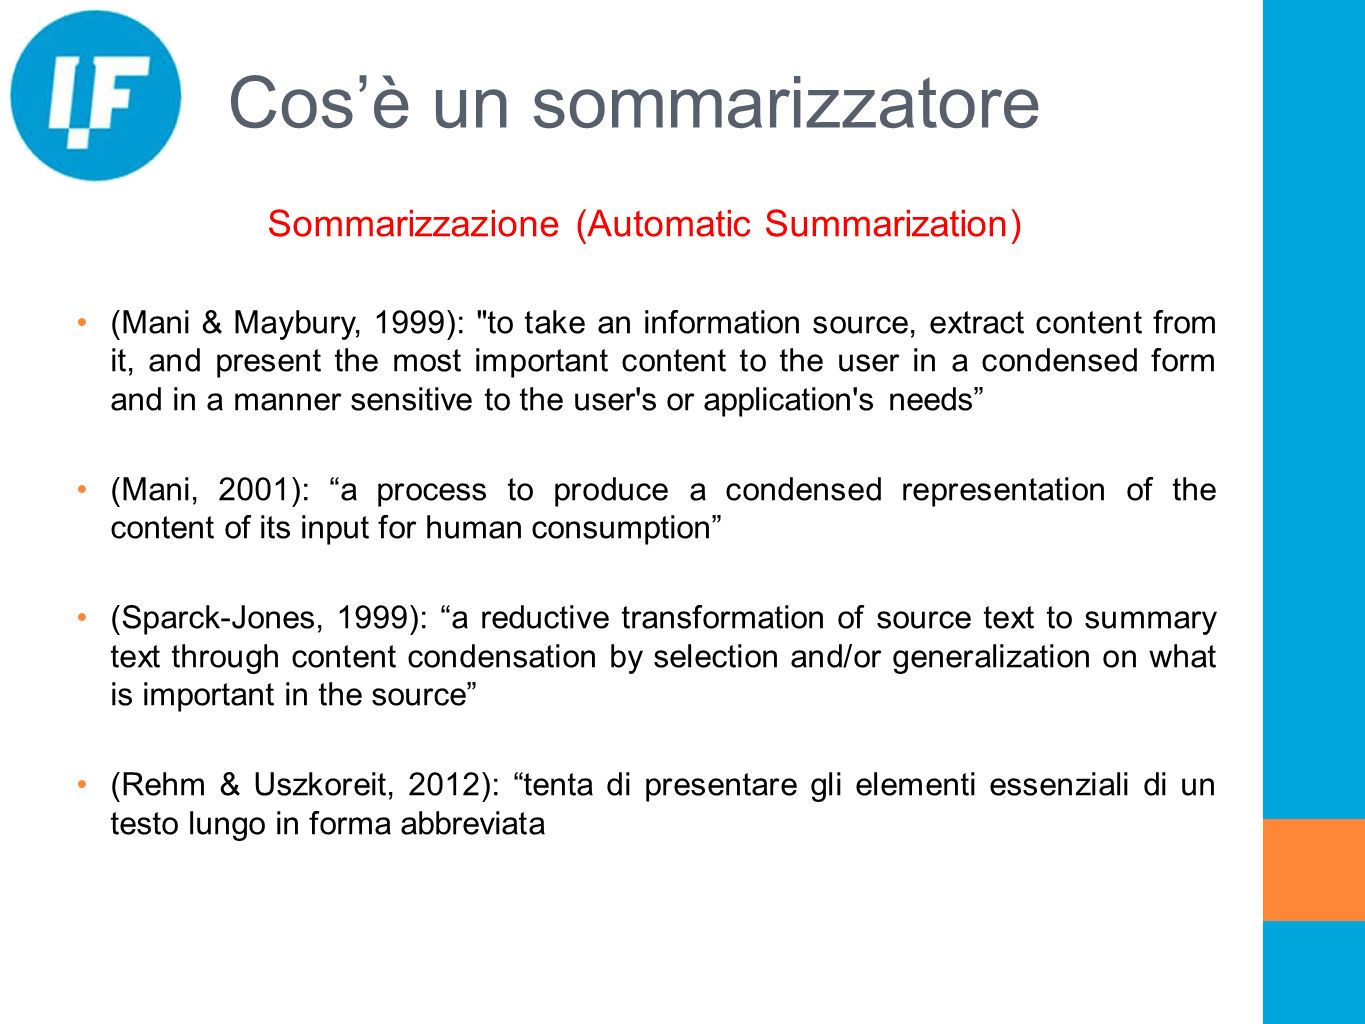 Cosè un sommarizzatore Sommarizzazione (Automatic Summarization) (Mani & Maybury, 1999): to take an information source, extract content from it, and present the most important content to the user in a condensed form and in a manner sensitive to the user s or application s needs (Mani, 2001): a process to produce a condensed representation of the content of its input for human consumption (Sparck-Jones, 1999): a reductive transformation of source text to summary text through content condensation by selection and/or generalization on what is important in the source (Rehm & Uszkoreit, 2012): tenta di presentare gli elementi essenziali di un testo lungo in forma abbreviata